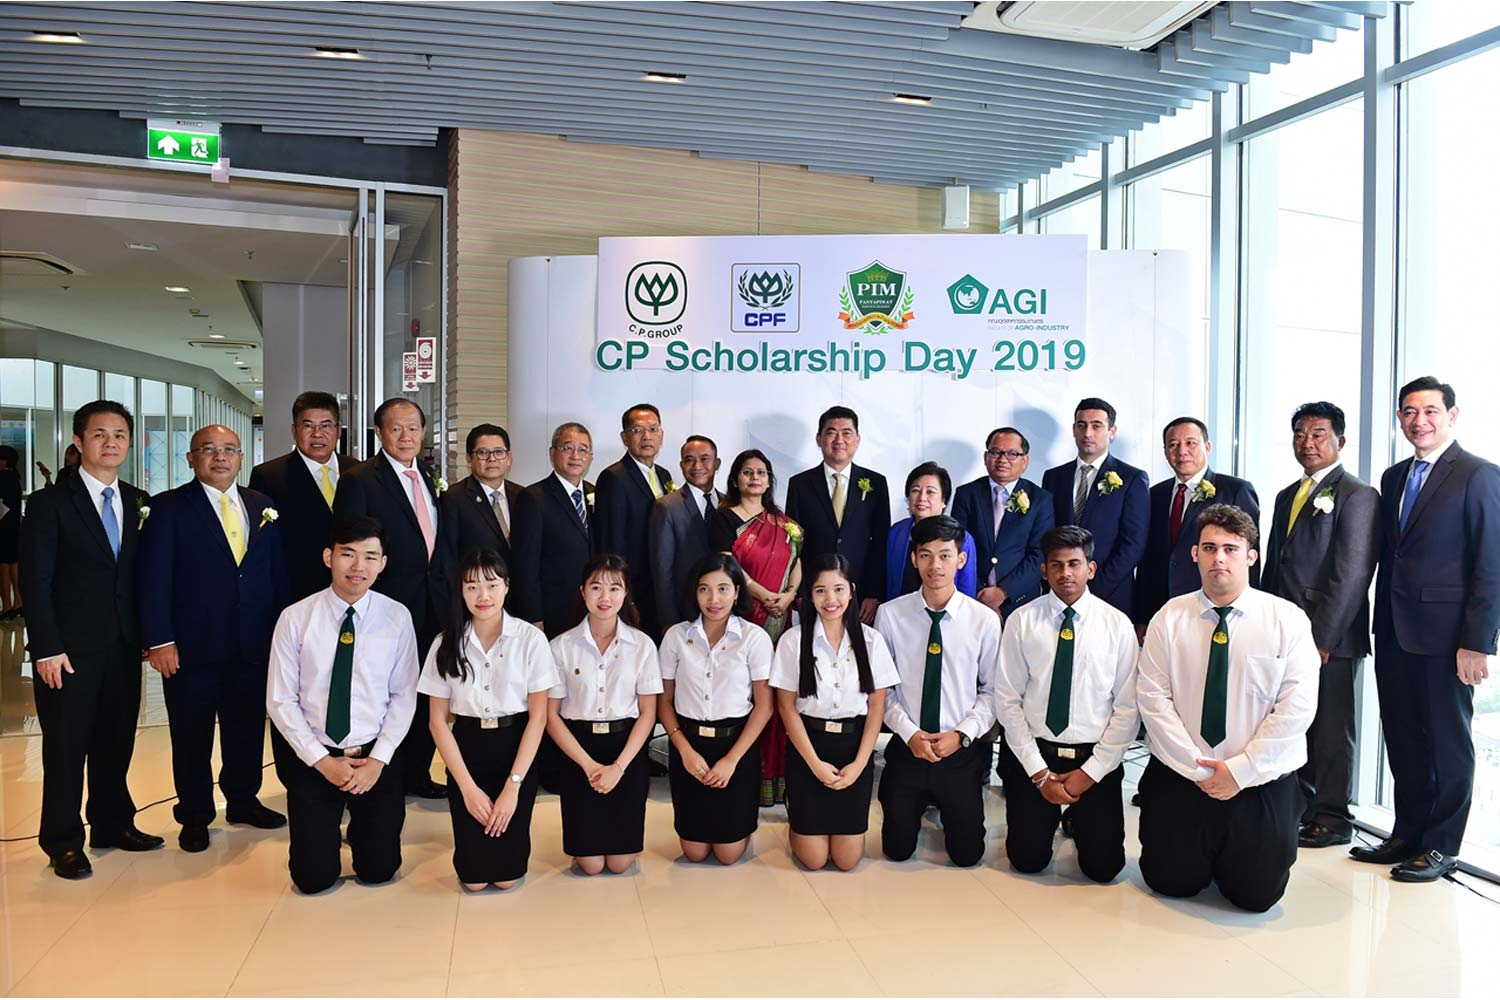 CPF awards scholarships to agro-industry and food processing